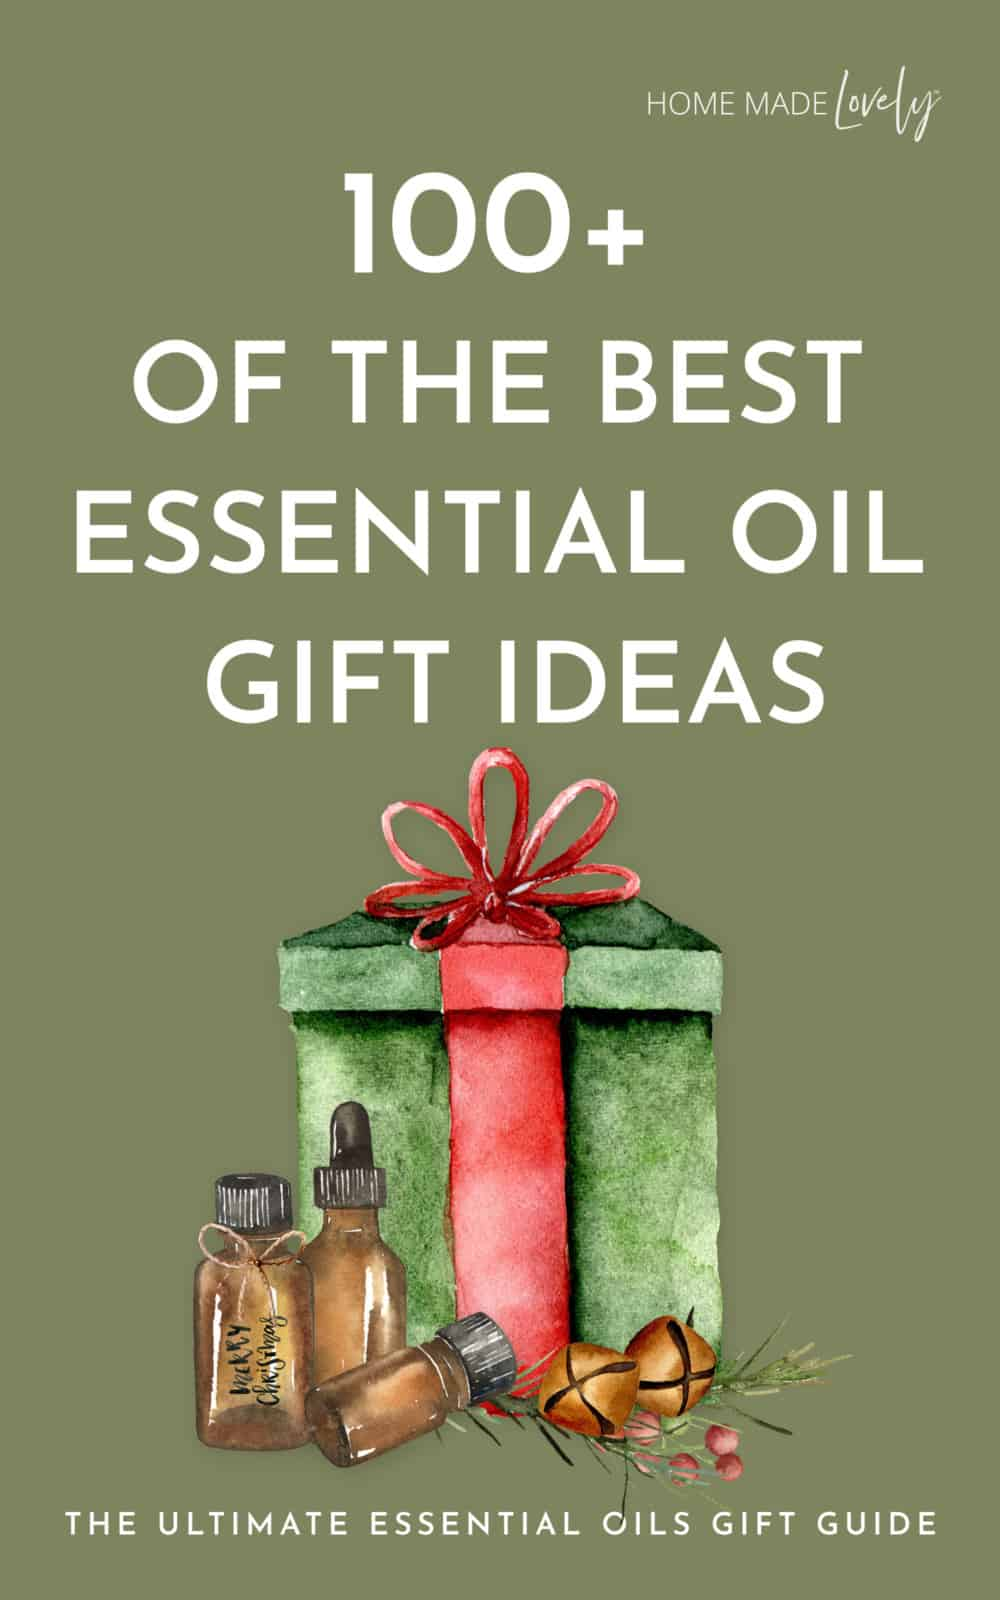 essential oils gifts text on green background